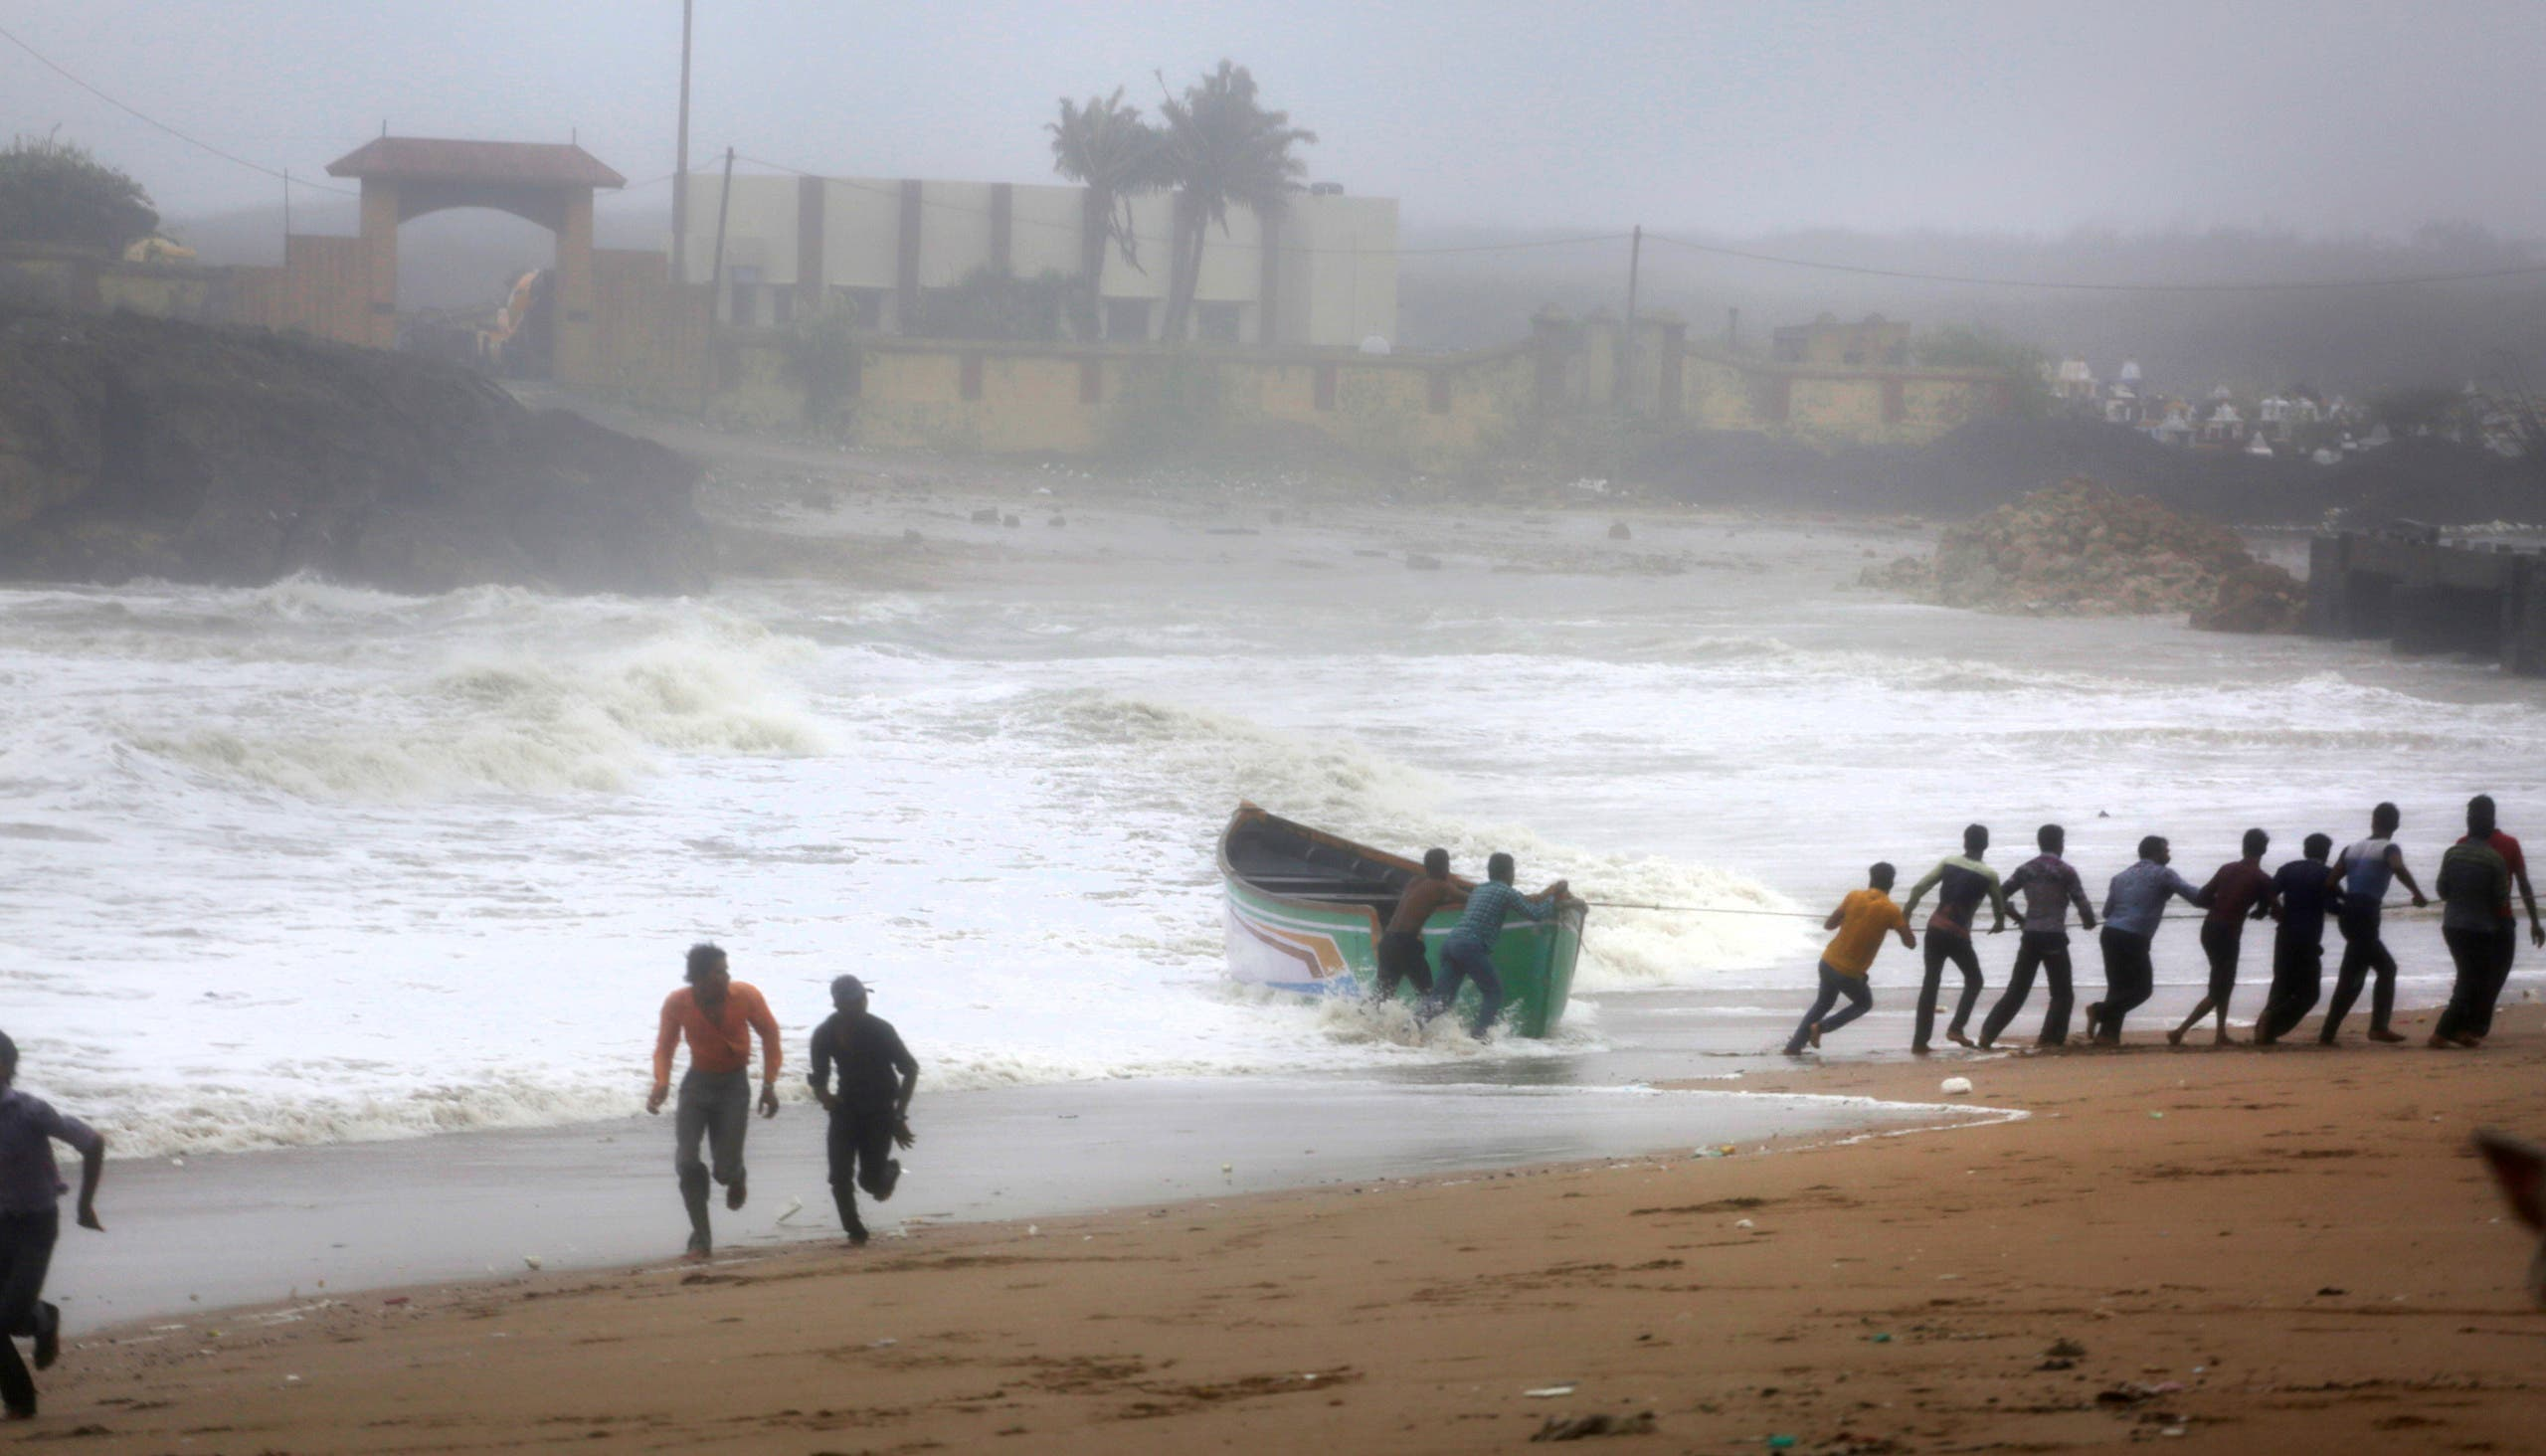 People try to pull back a fishing boat that was carried away by waves on the Arabian Sea coast as others run to take shelter in Veraval, Gujarat, India, on June 13, 2019. (AP)